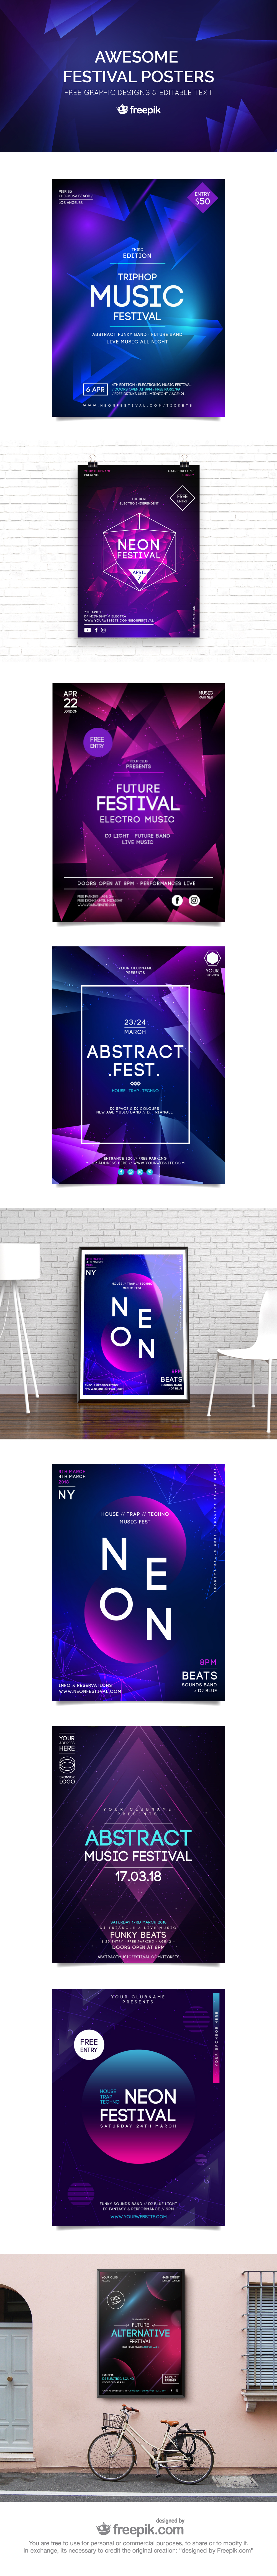 Free Awesome Festival Poster Templates